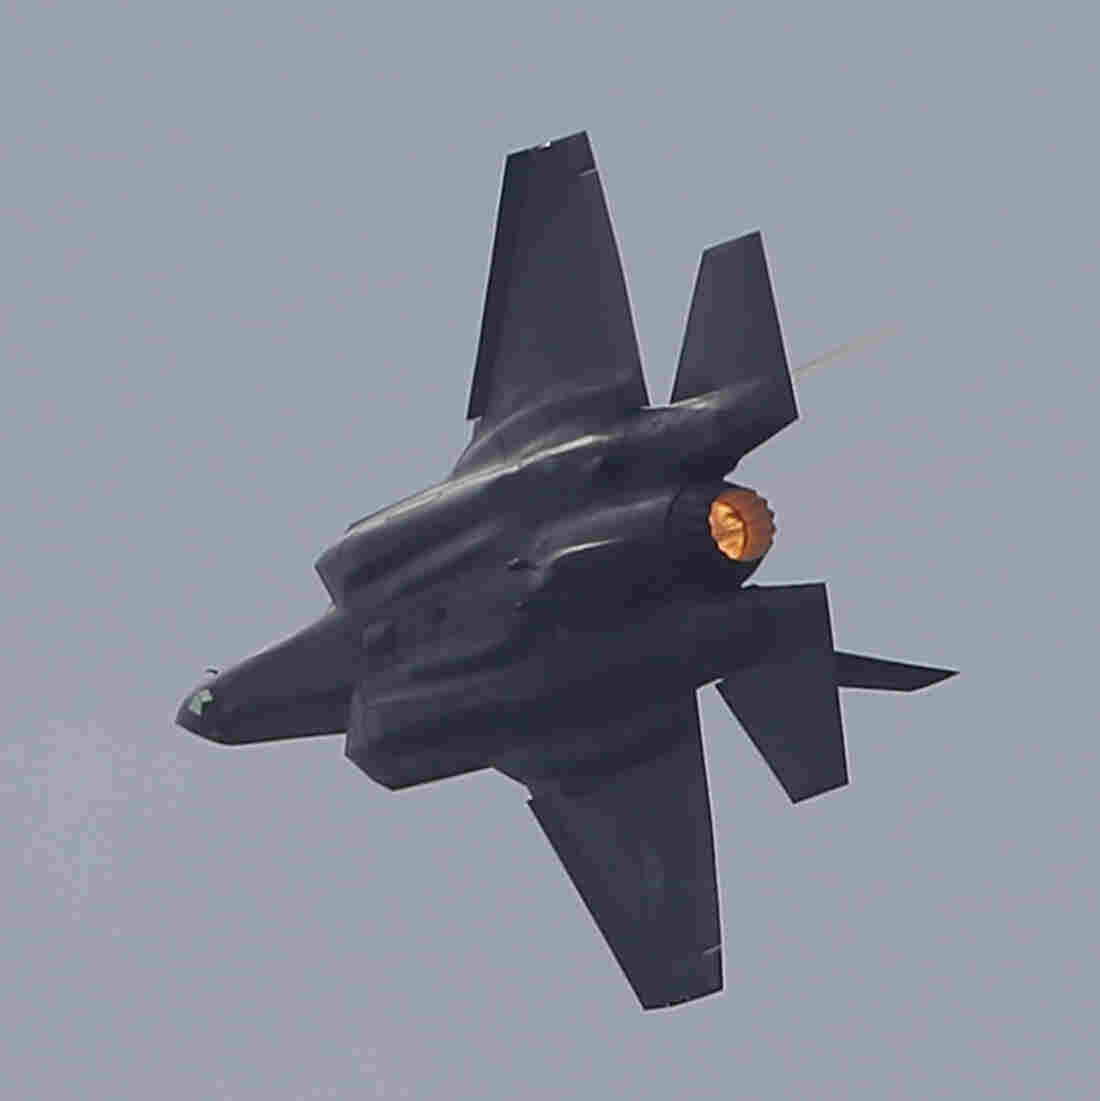 Israel uses new F-35 stealth fighters in combat